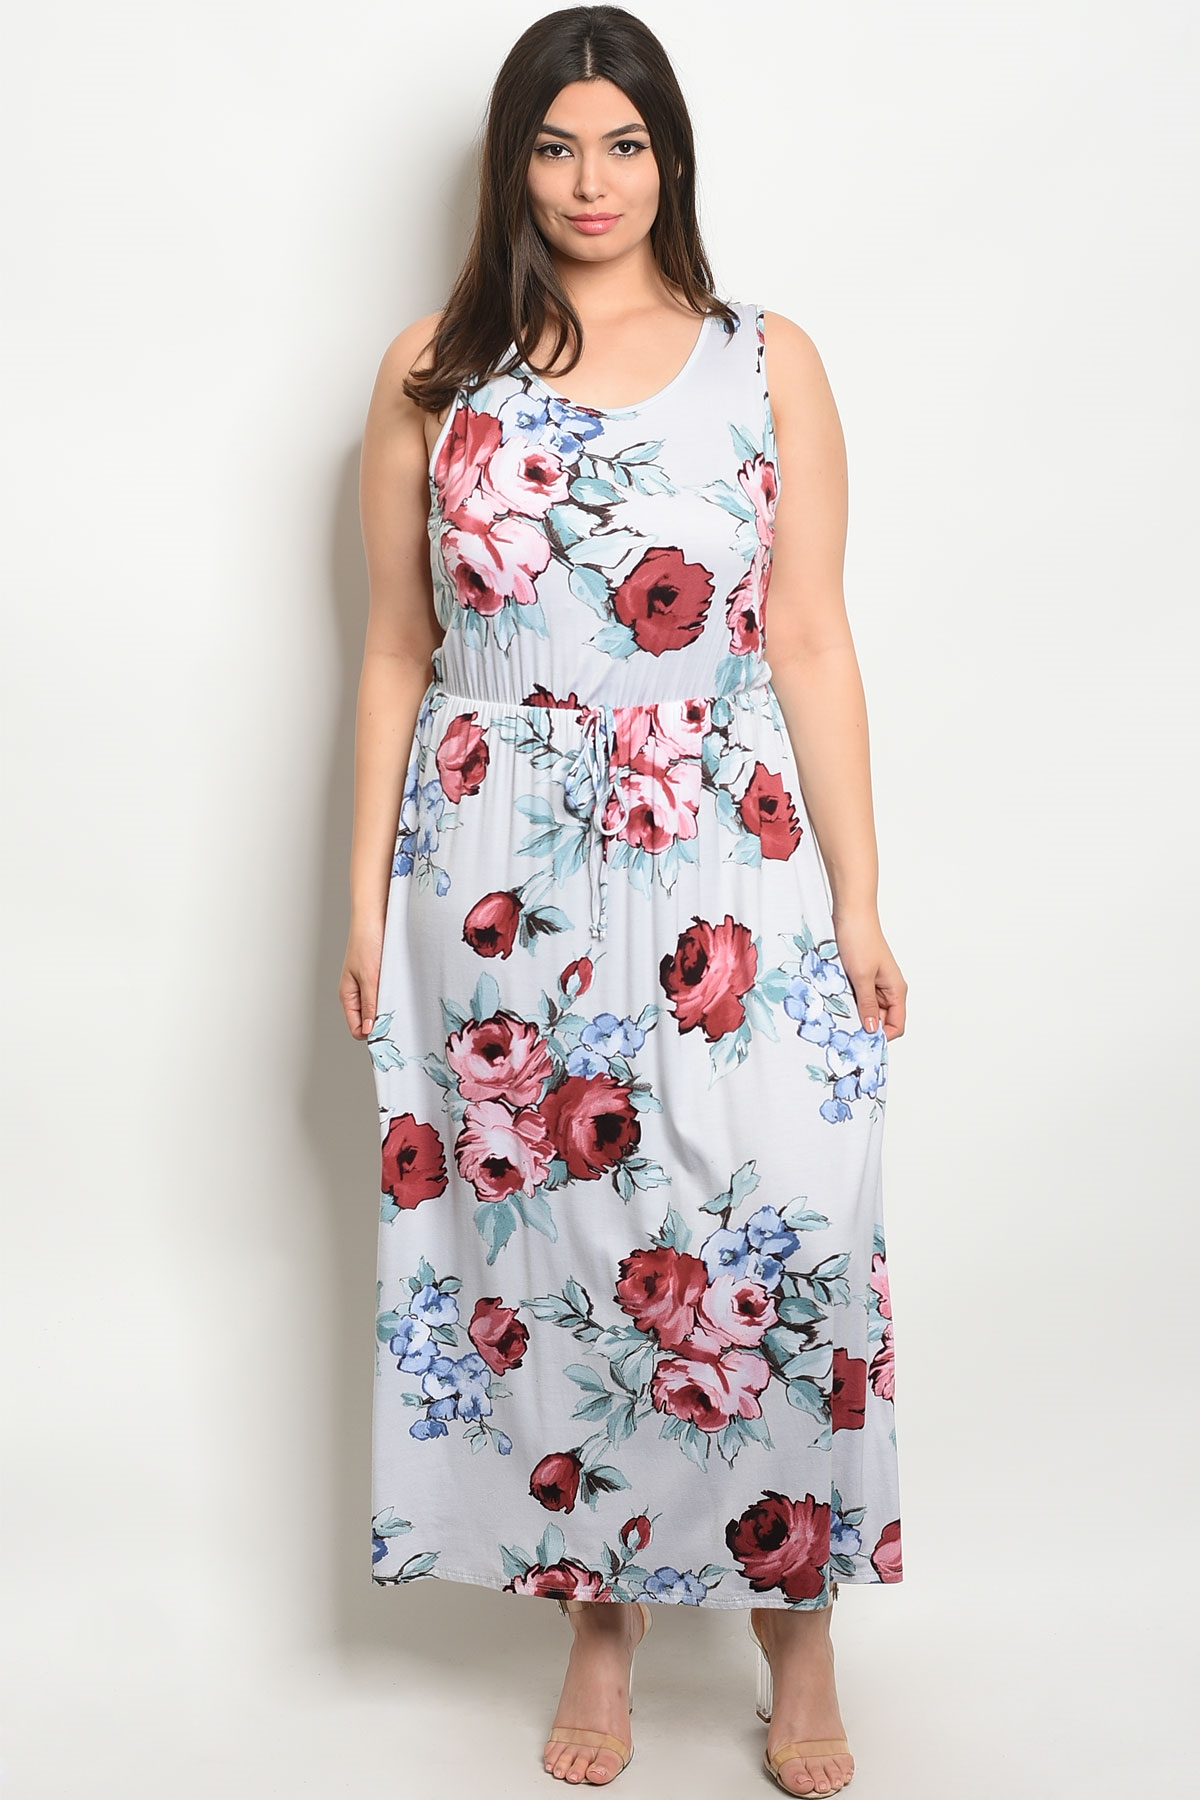 a65c6cd74e00 ... WHITE FLORAL PLUS SIZE DRESS 2-2. Larger Photo ...